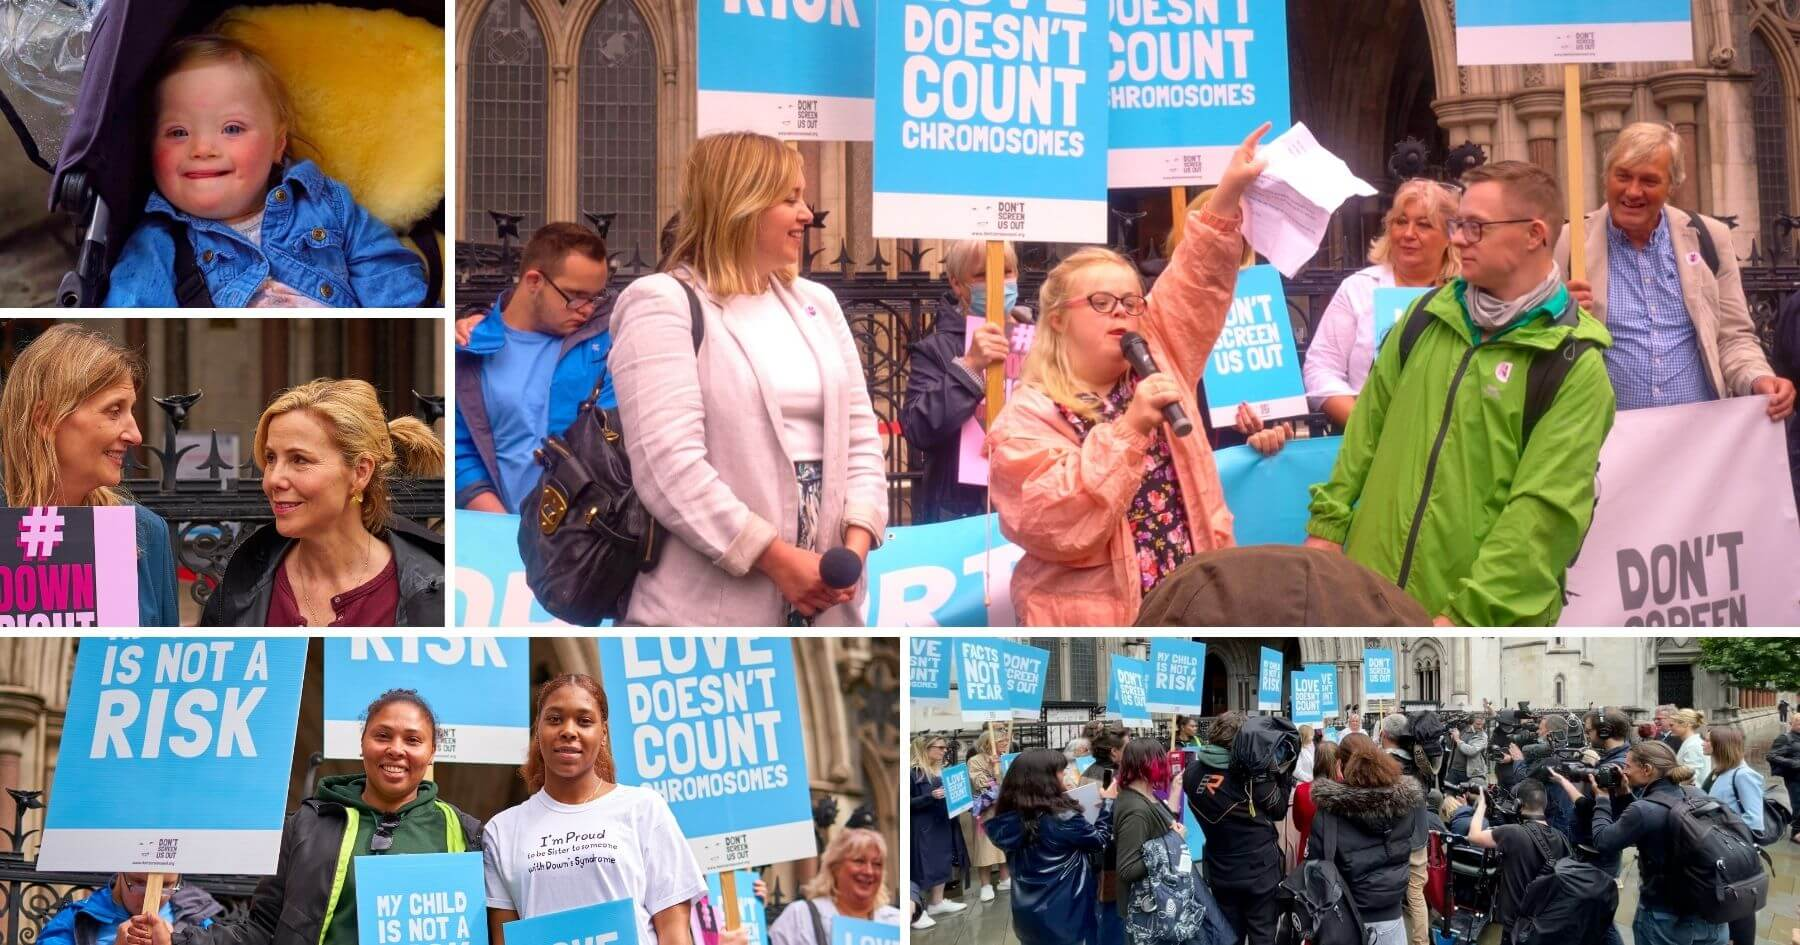 Disability rights campaigners rally outside High Court as case over discriminatory abortion law heard